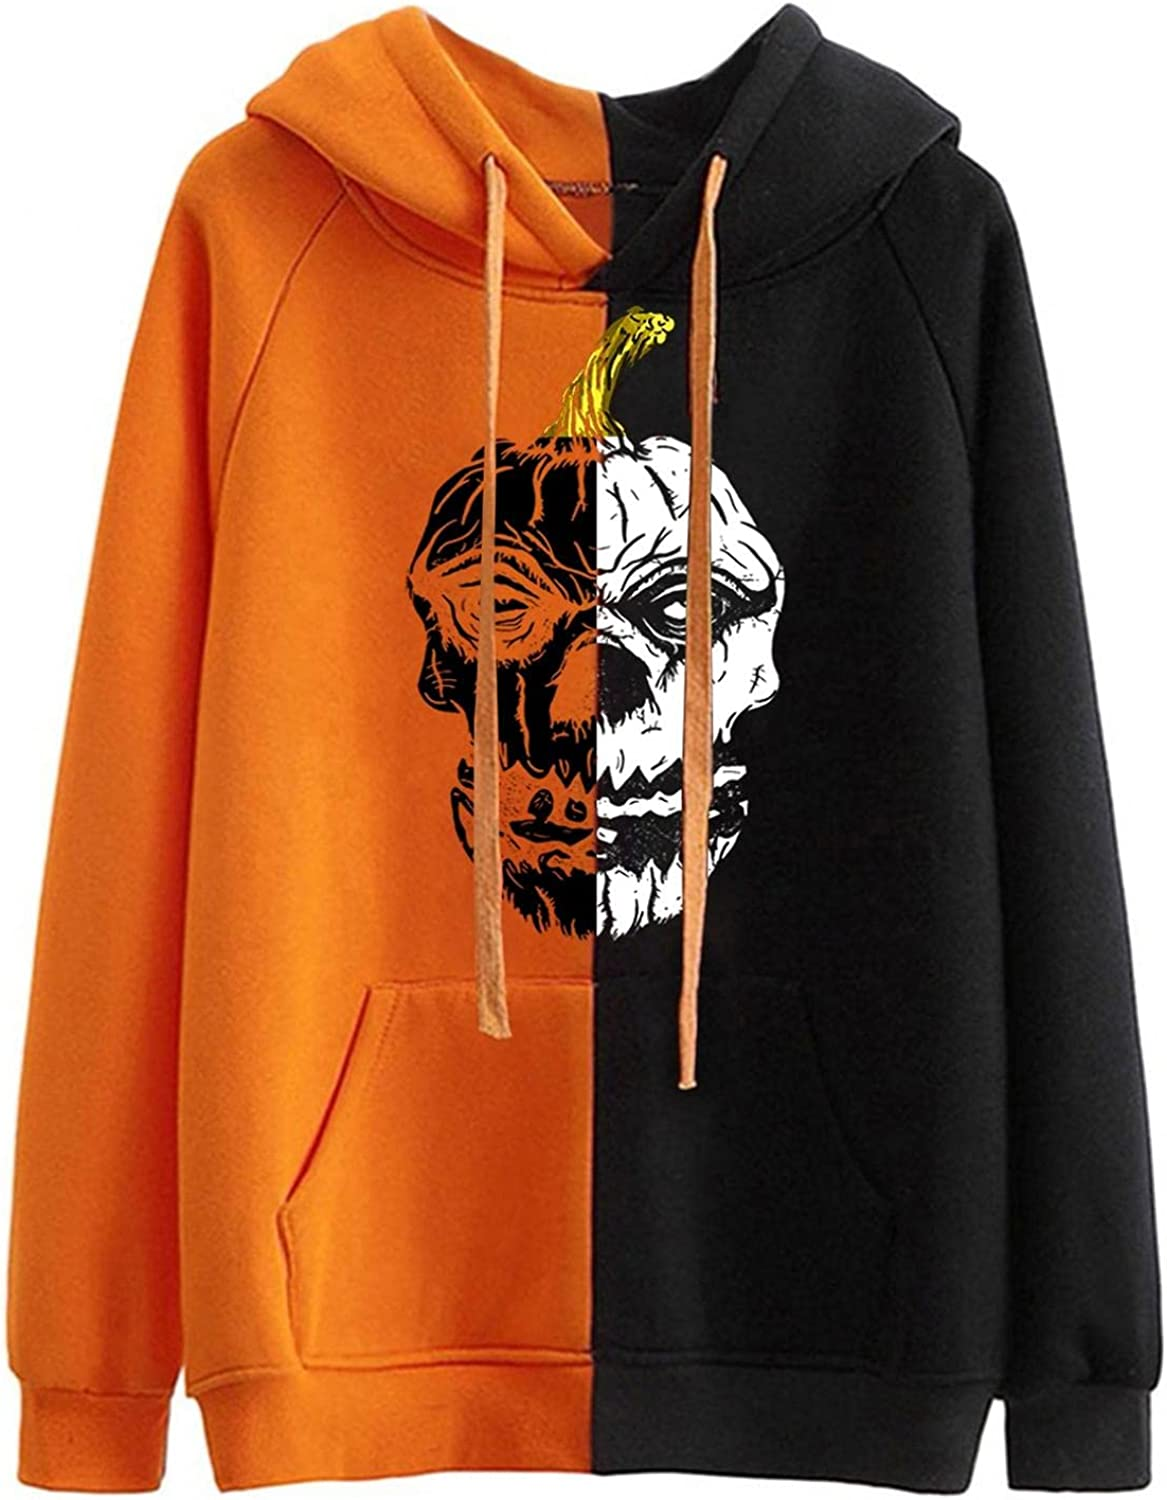 TAYBAGH Halloween Sweatshirts for Women Horror Smiley Long Sleeve Hoodies Casual Patchwork Lightweight Sweater Pullover